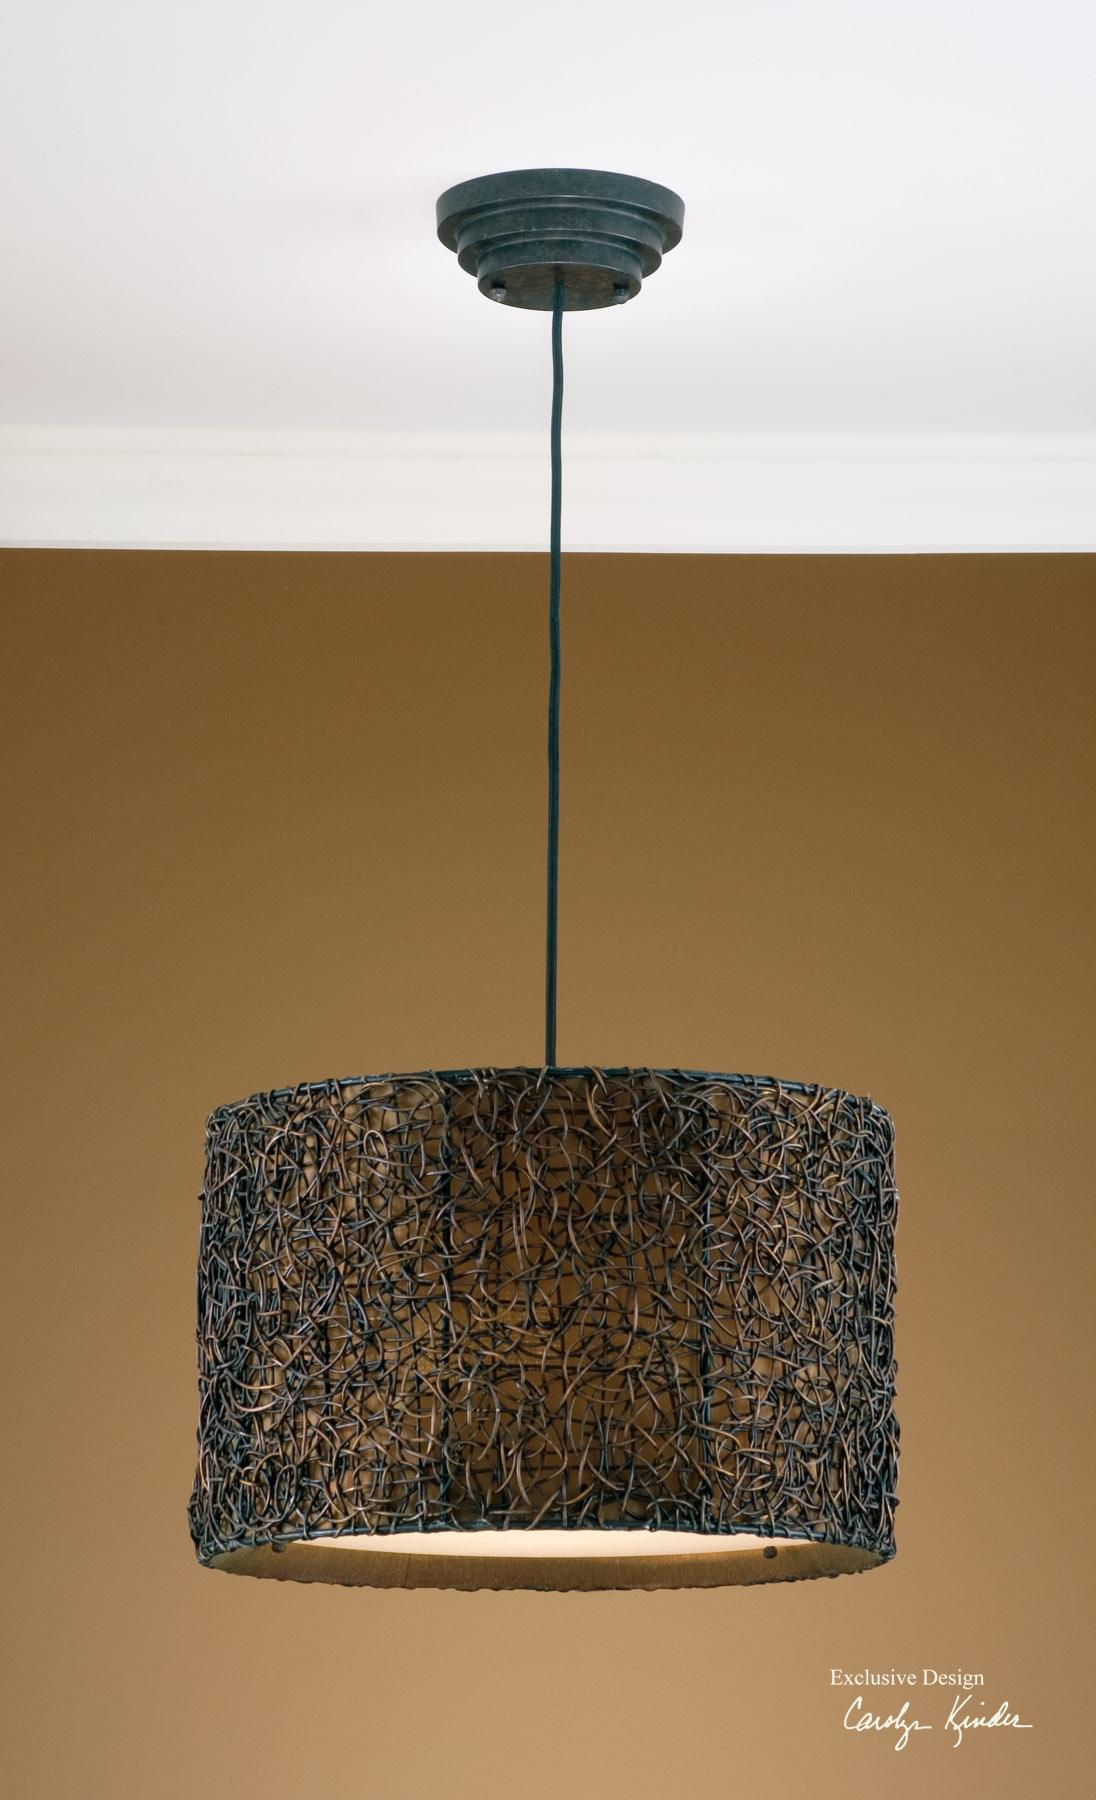 Uttermost Lighting Fixtures Knotted Rattan Hanging Shade - Item Number: 21103